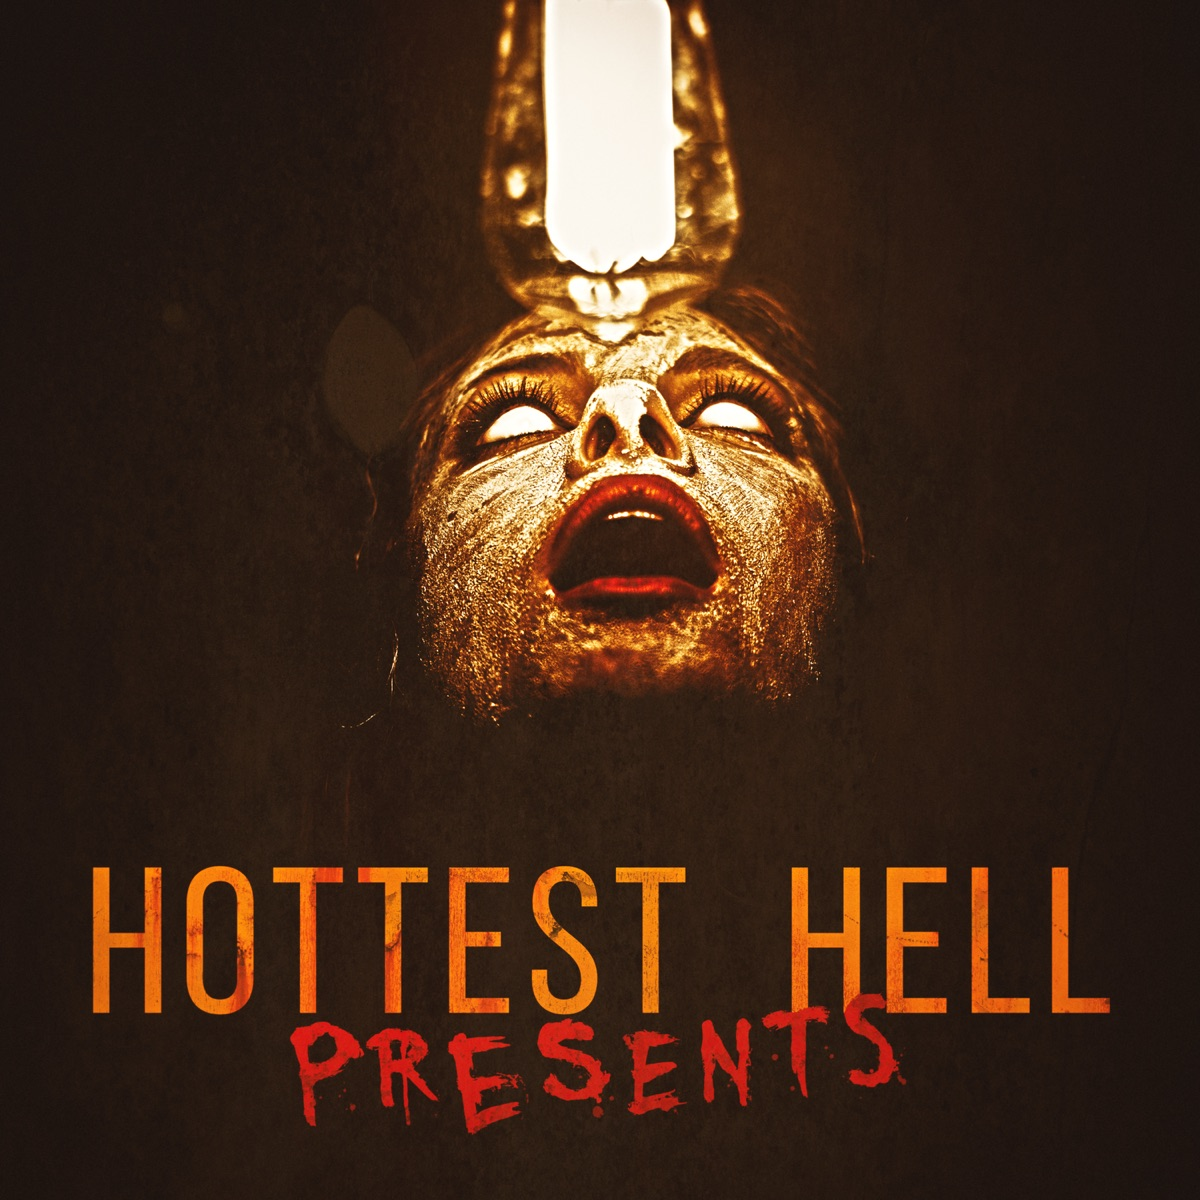 Hottest Hell Presents